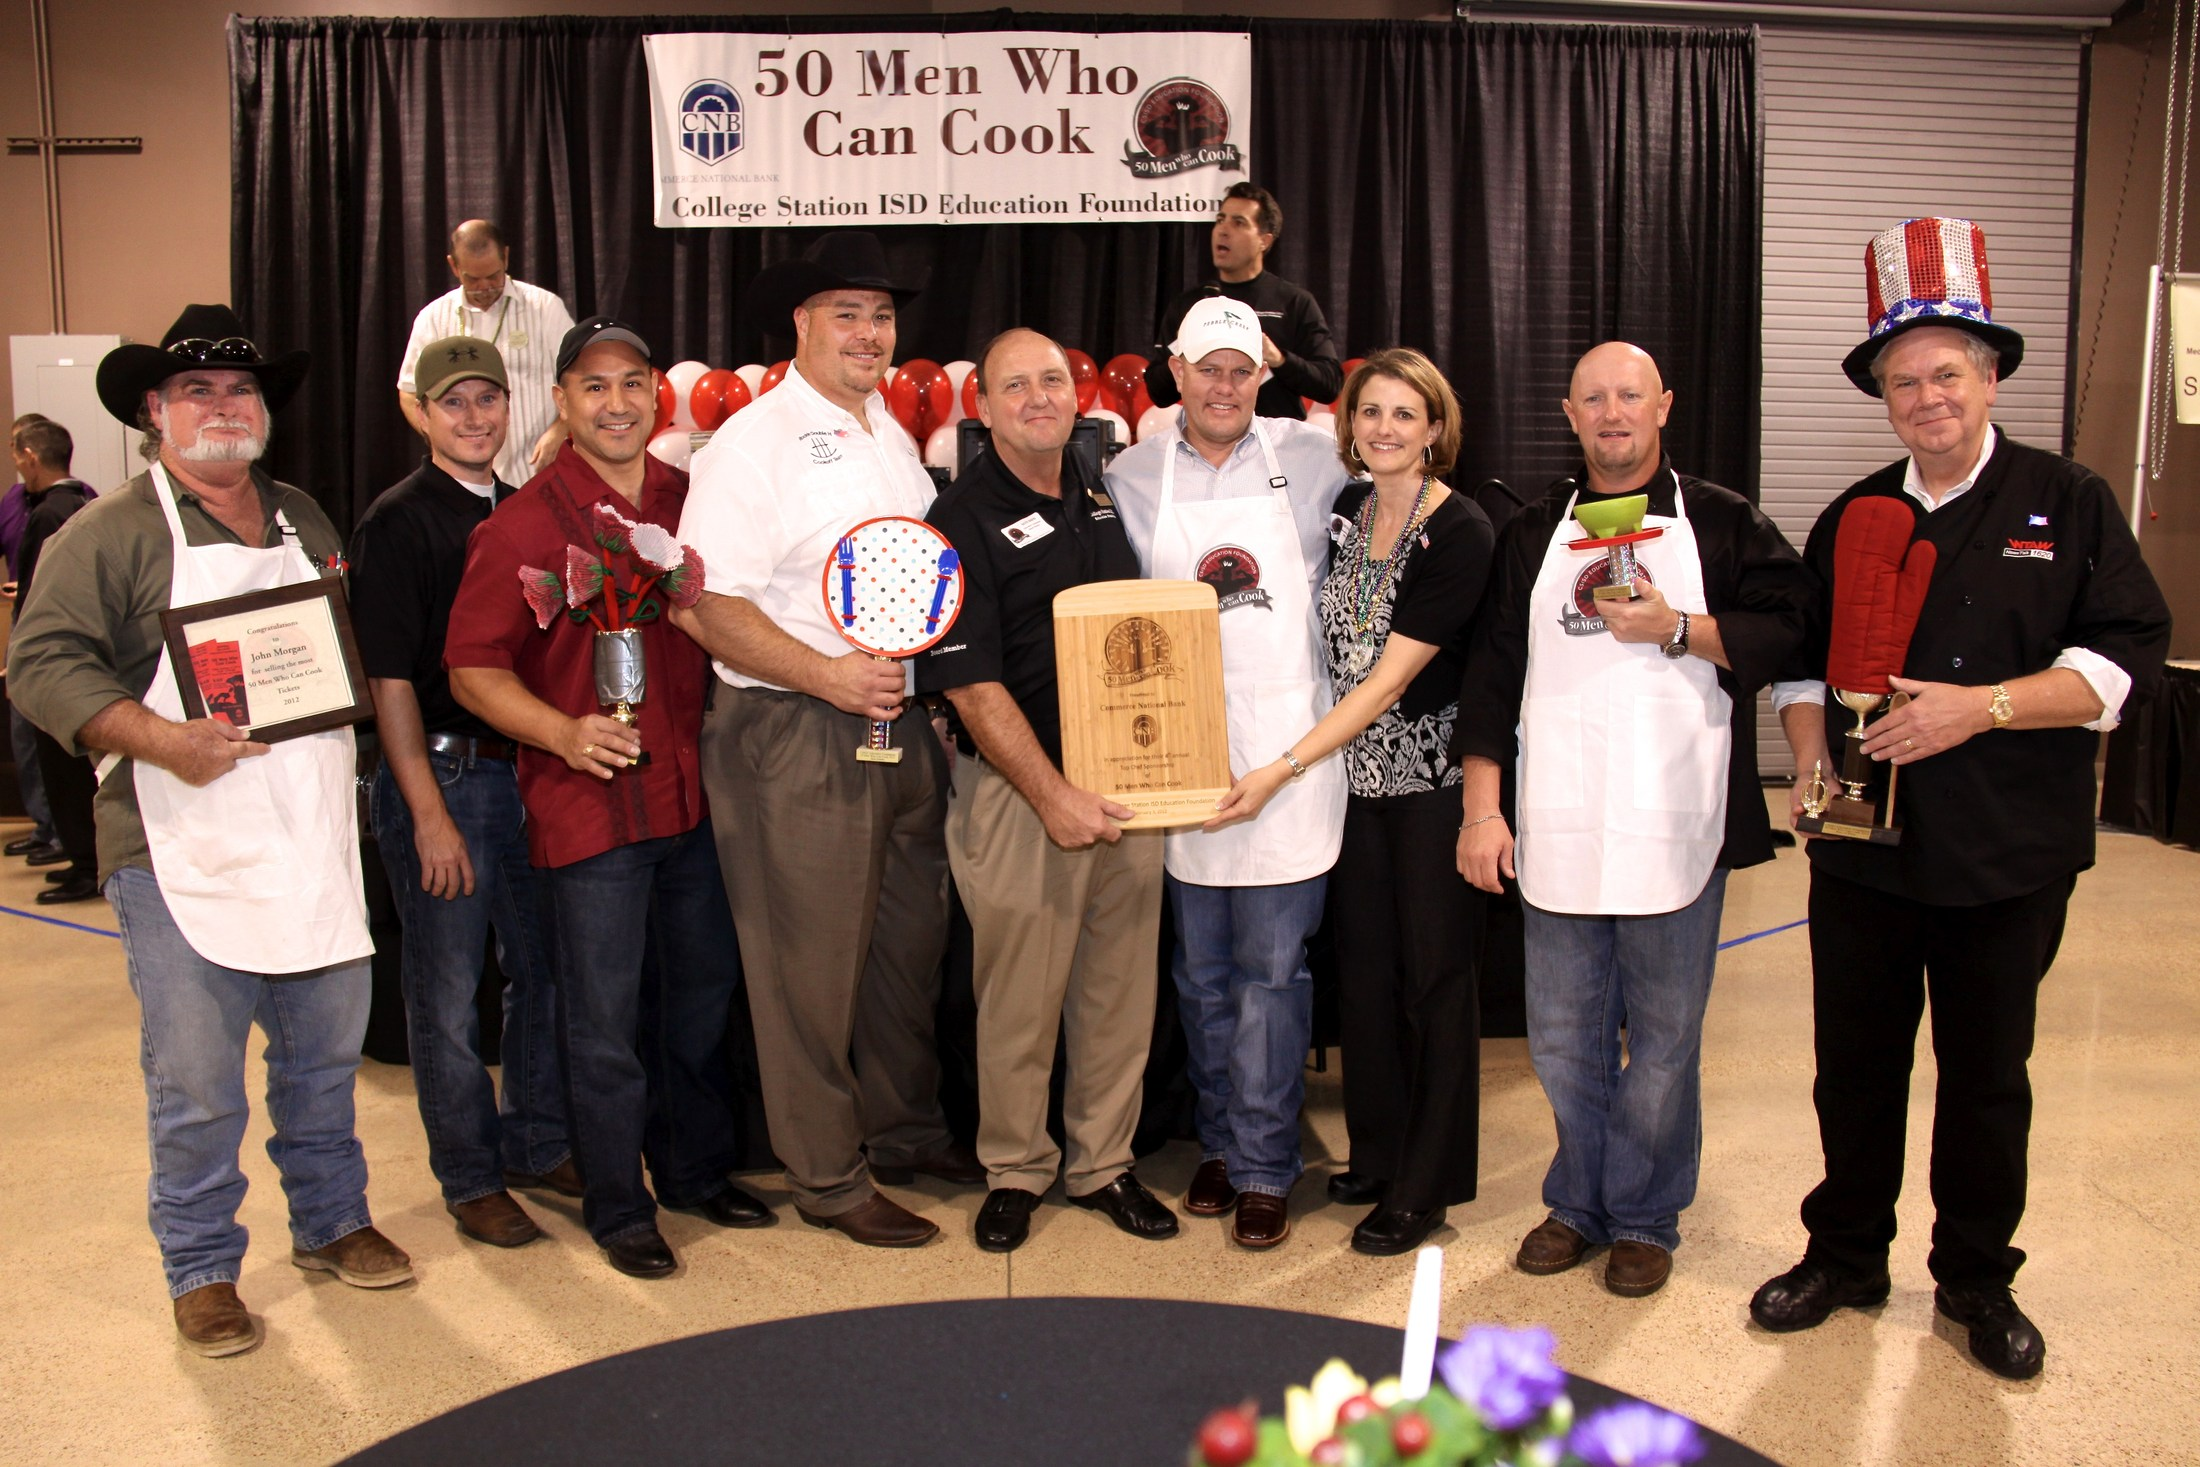 2012 50 Men Who Can Cook Winners